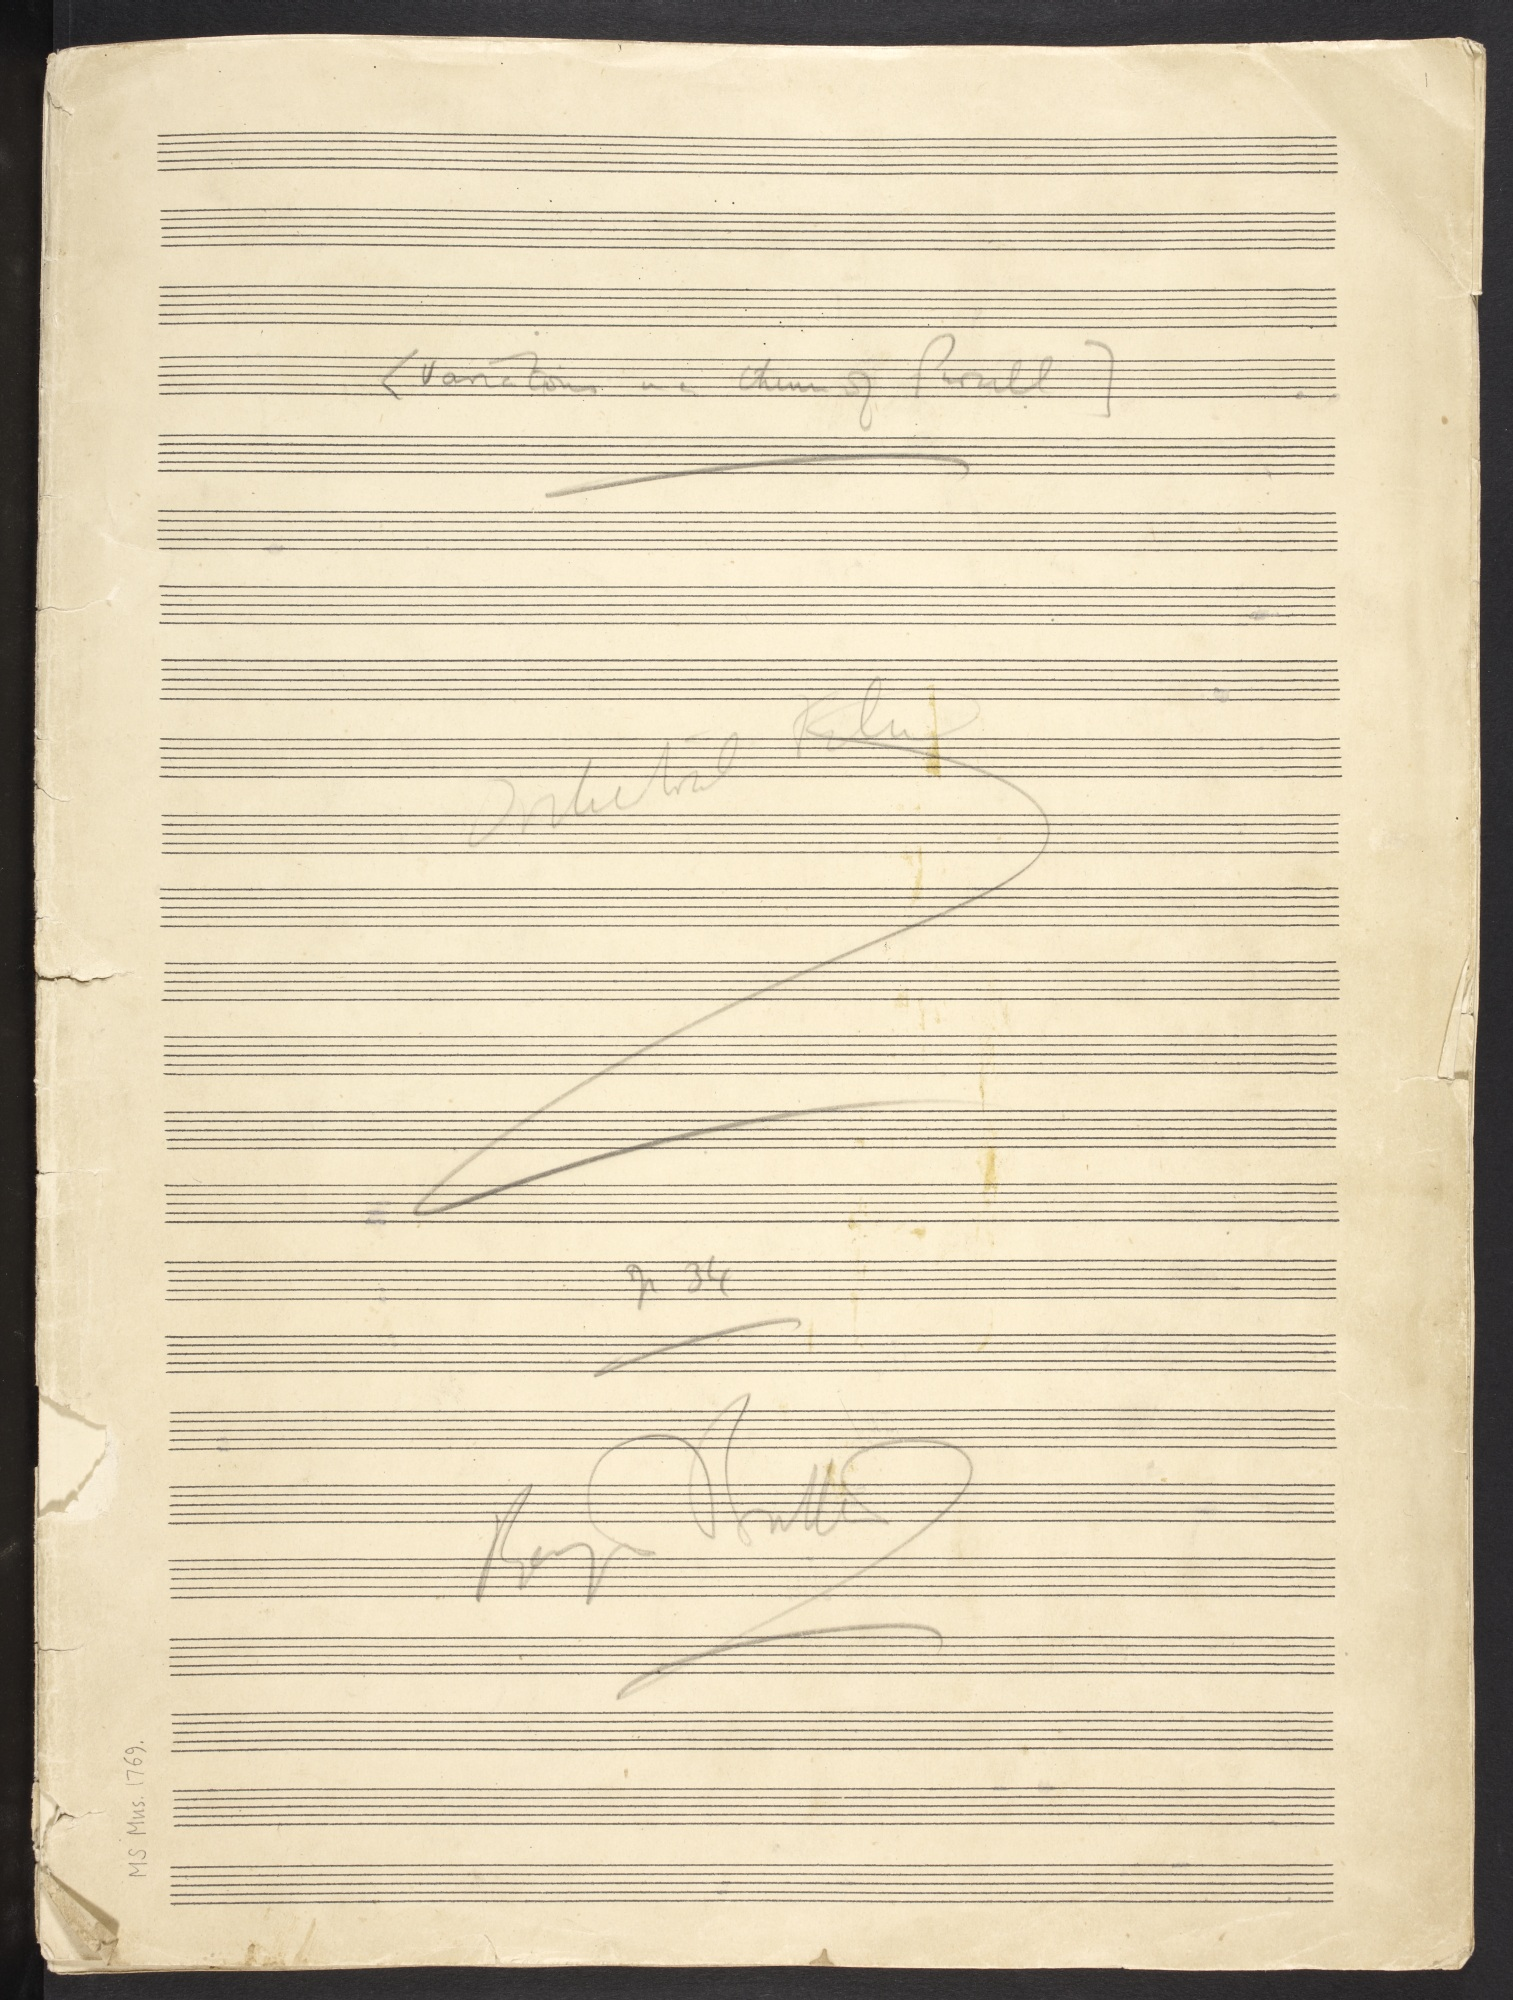 Benjamin Britten, The Young Person's Guide to the Orchestra, MS Mus. 1769